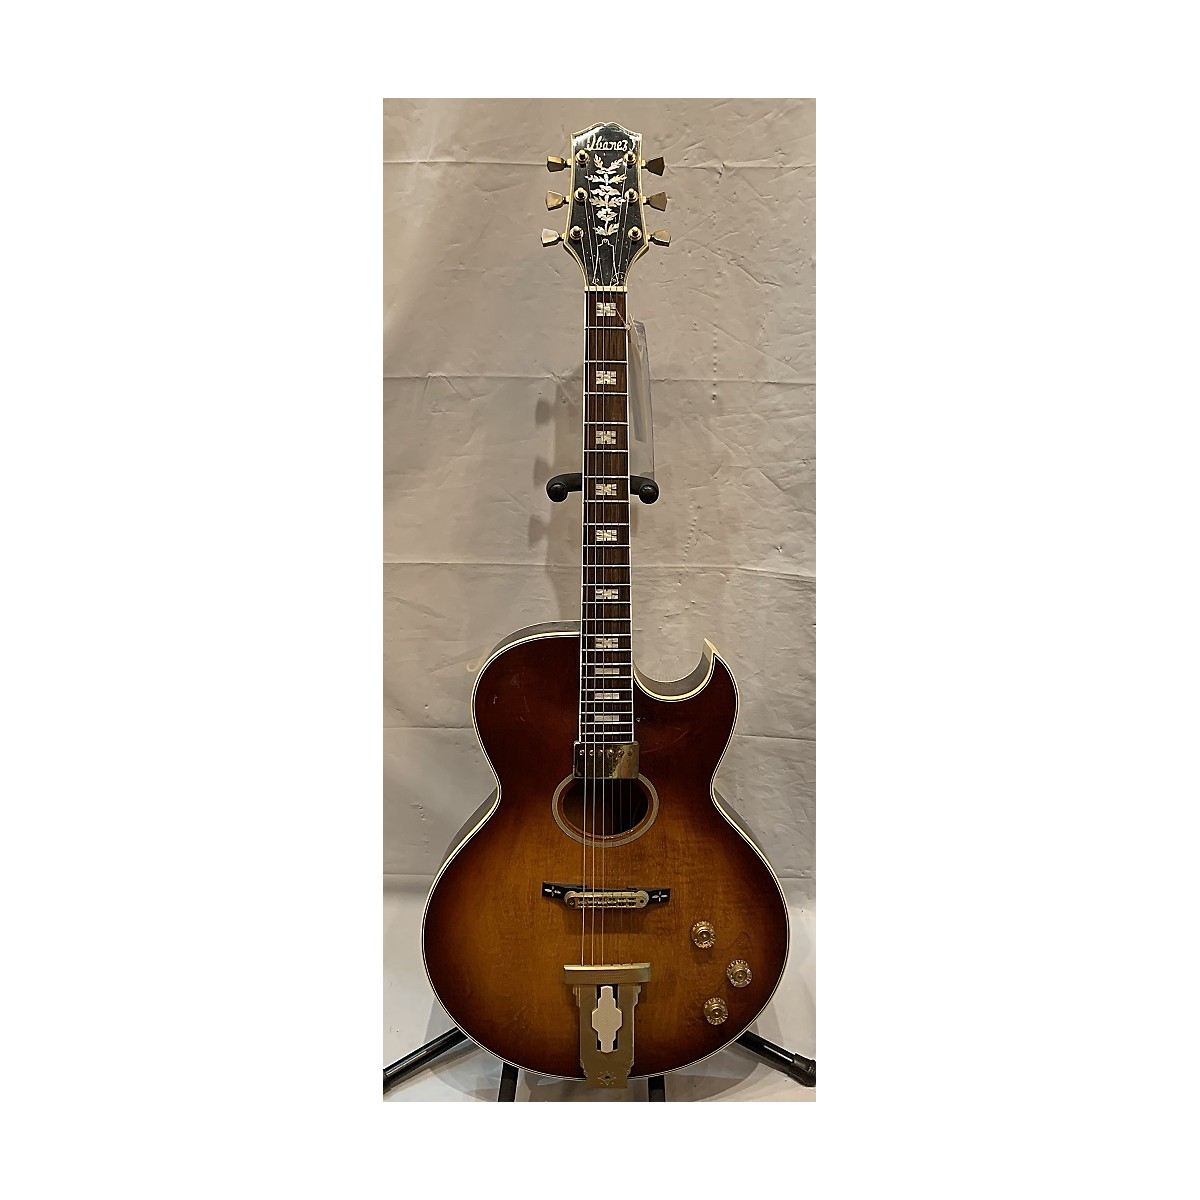 Ibanez 1977 Howard Roberts Fusion Hollow Body Electric Guitar